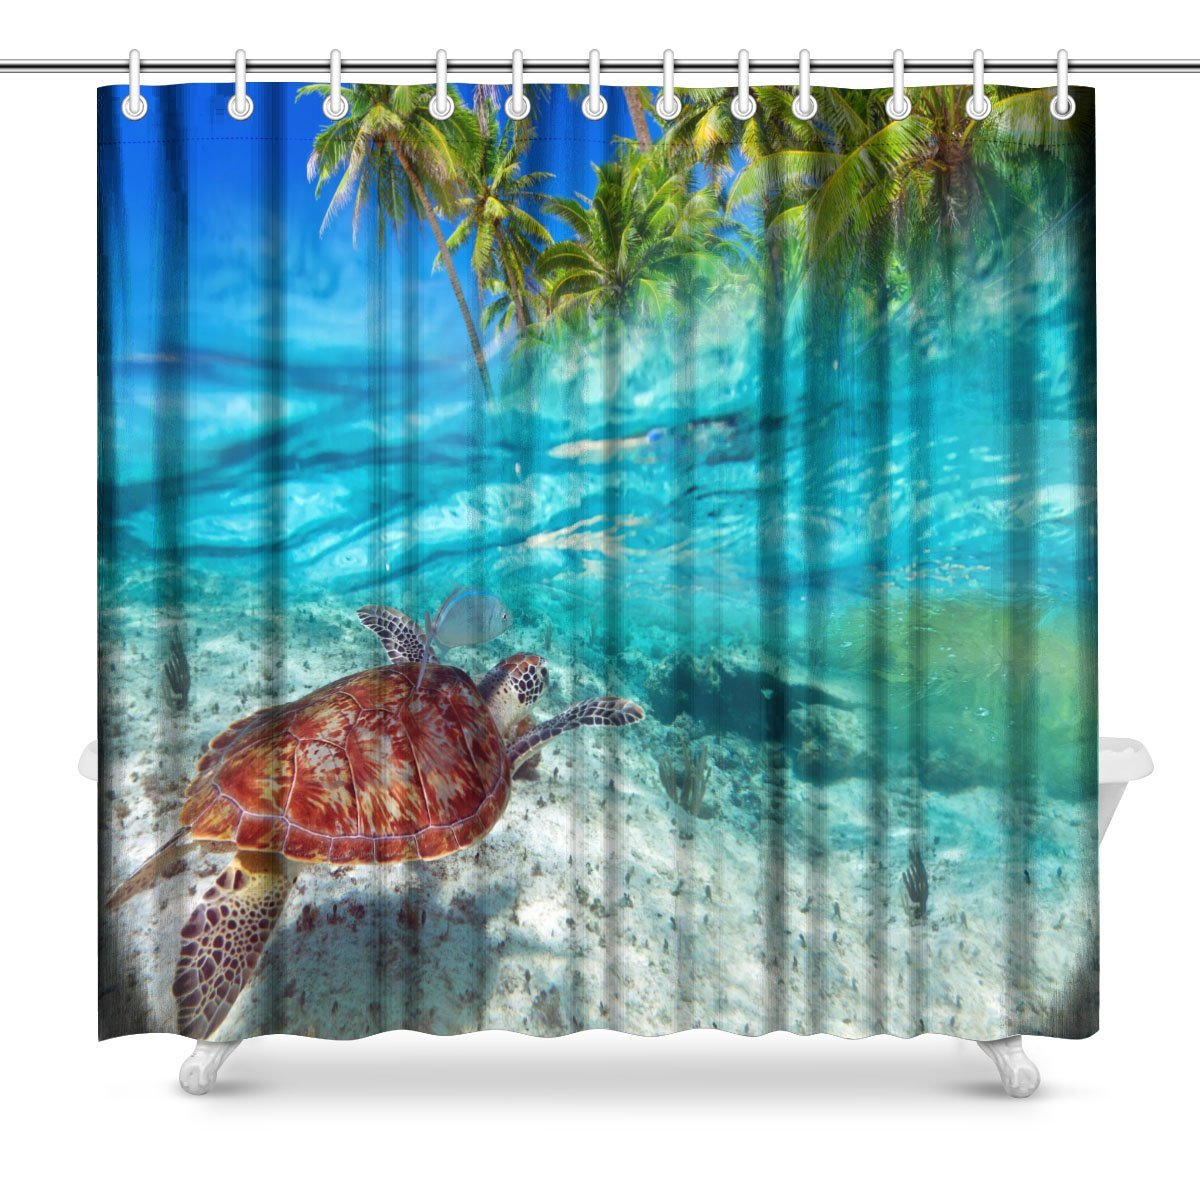 Green Turtle Swimming at Tropical Island of Caribbean Sea Art Digital Print Polyester Fabric Shower Curtain,